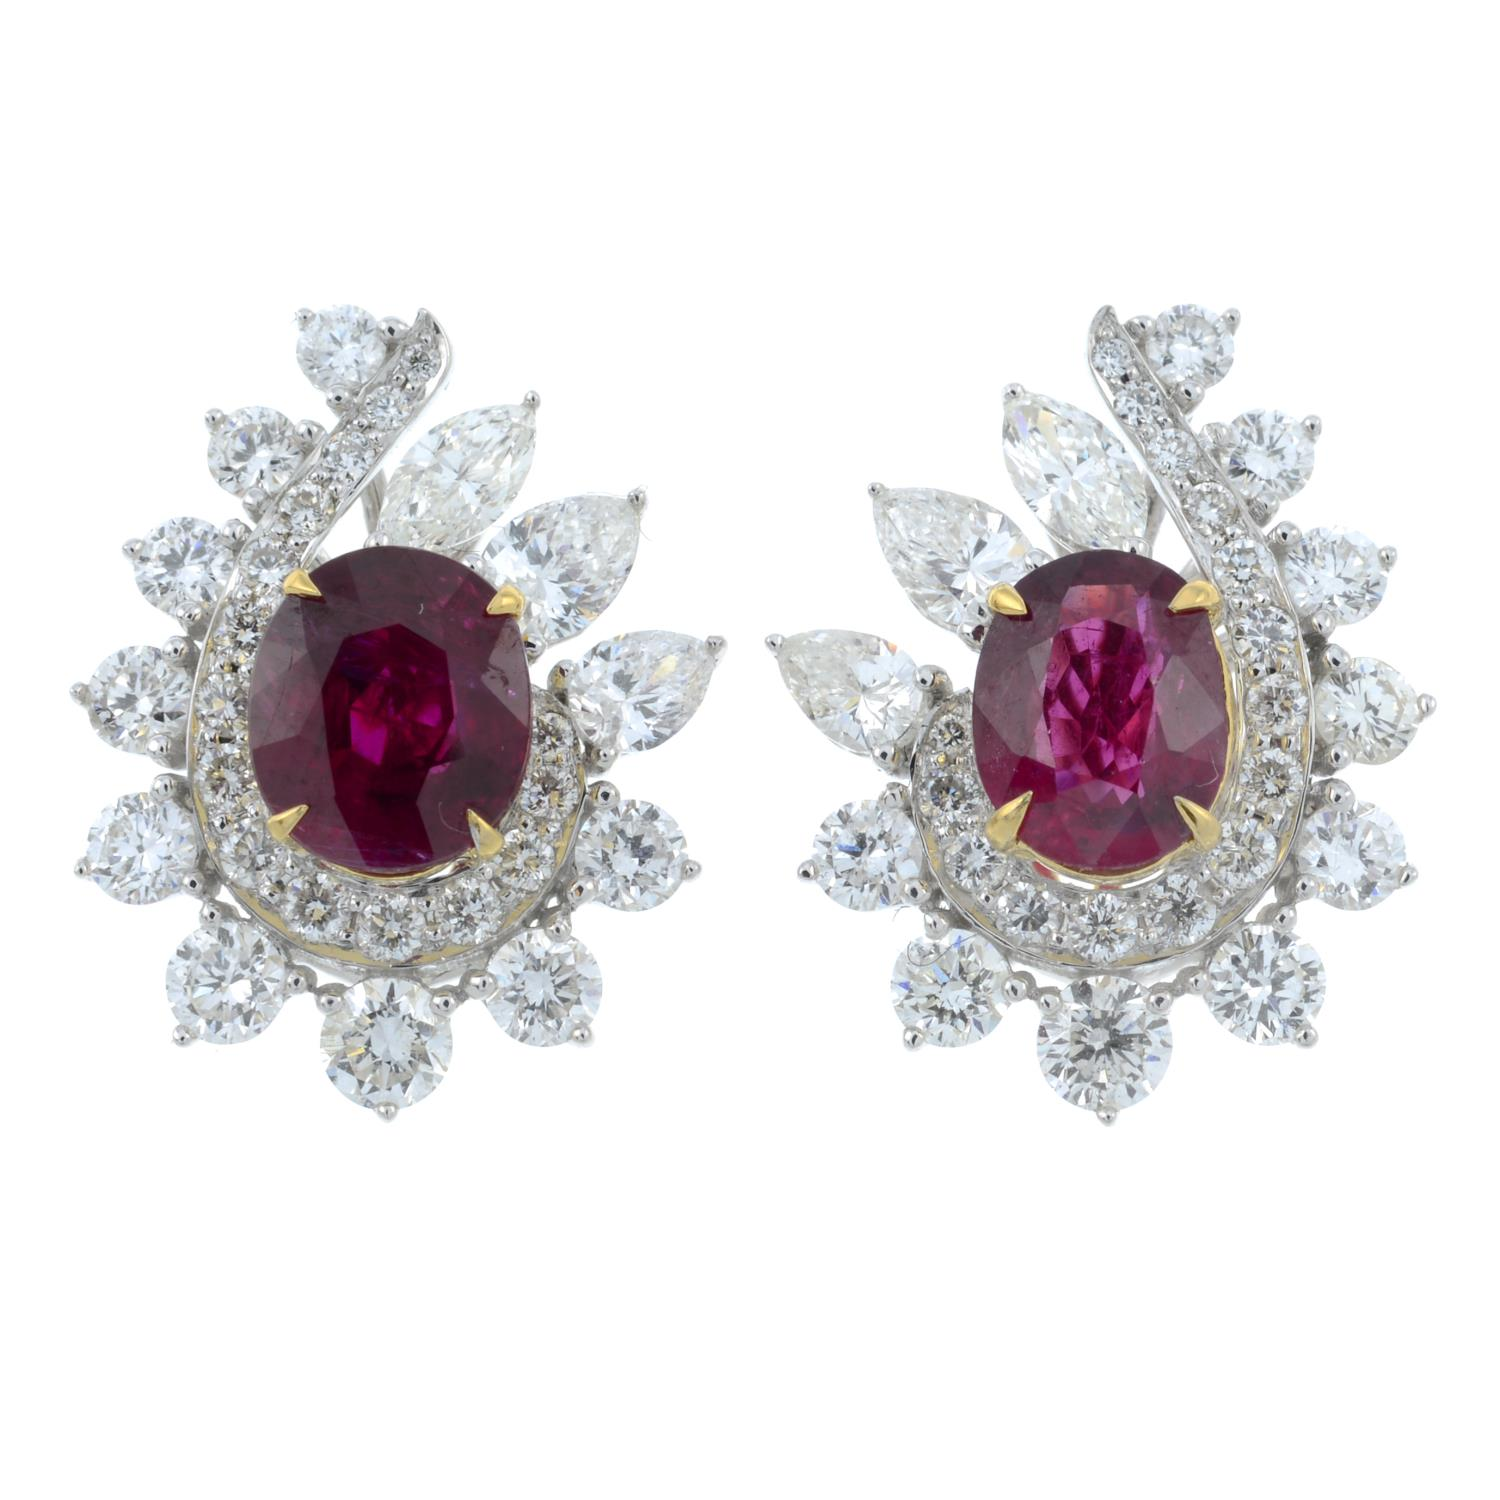 A pair of 'Pigeon's Blood' Burmese ruby and vari-cut diamond earrings.With reports from GRS, - Image 2 of 5